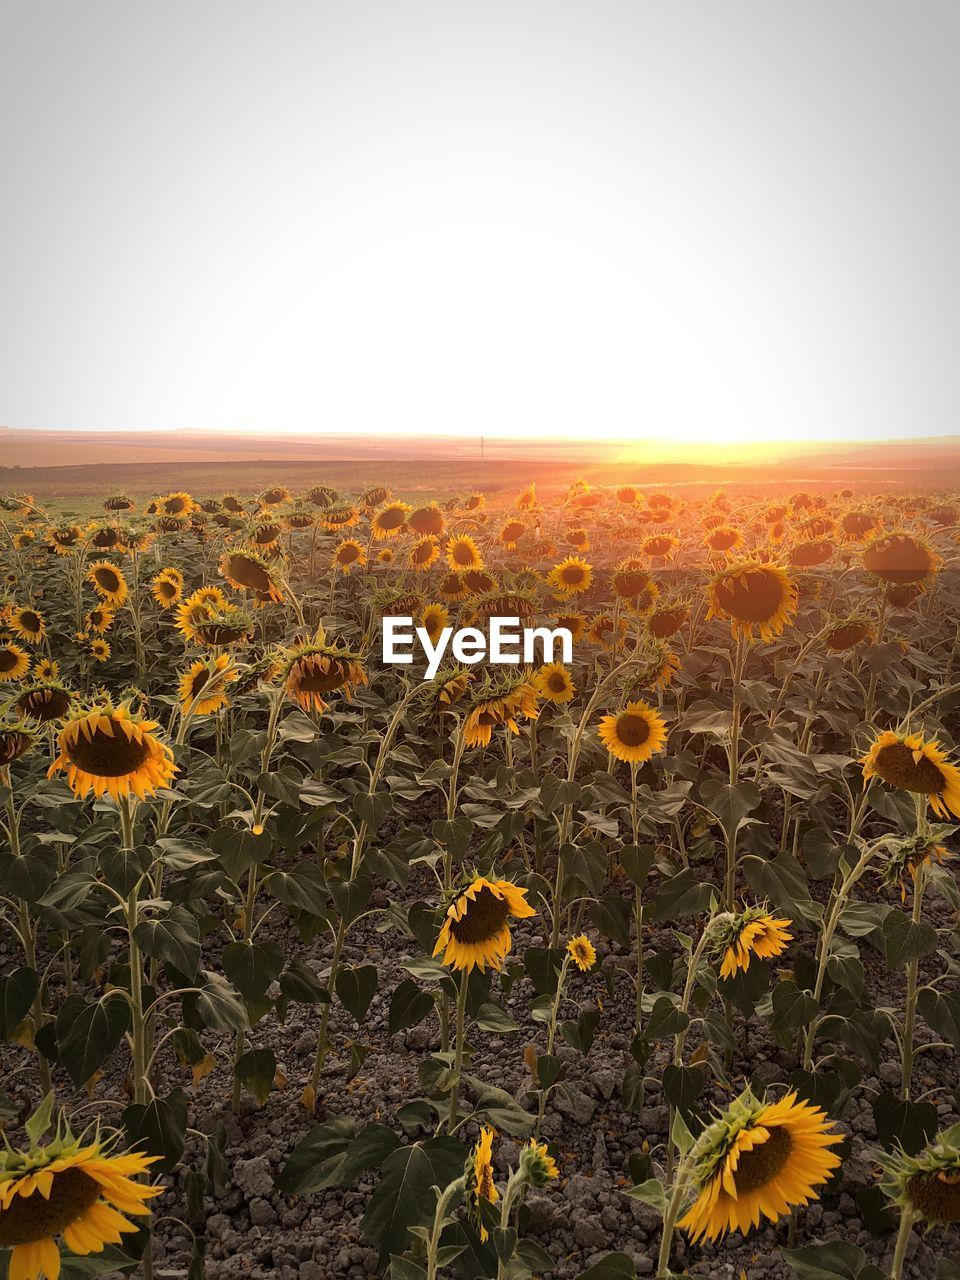 SCENIC VIEW OF SUNFLOWER FIELD AGAINST SKY DURING DUSK